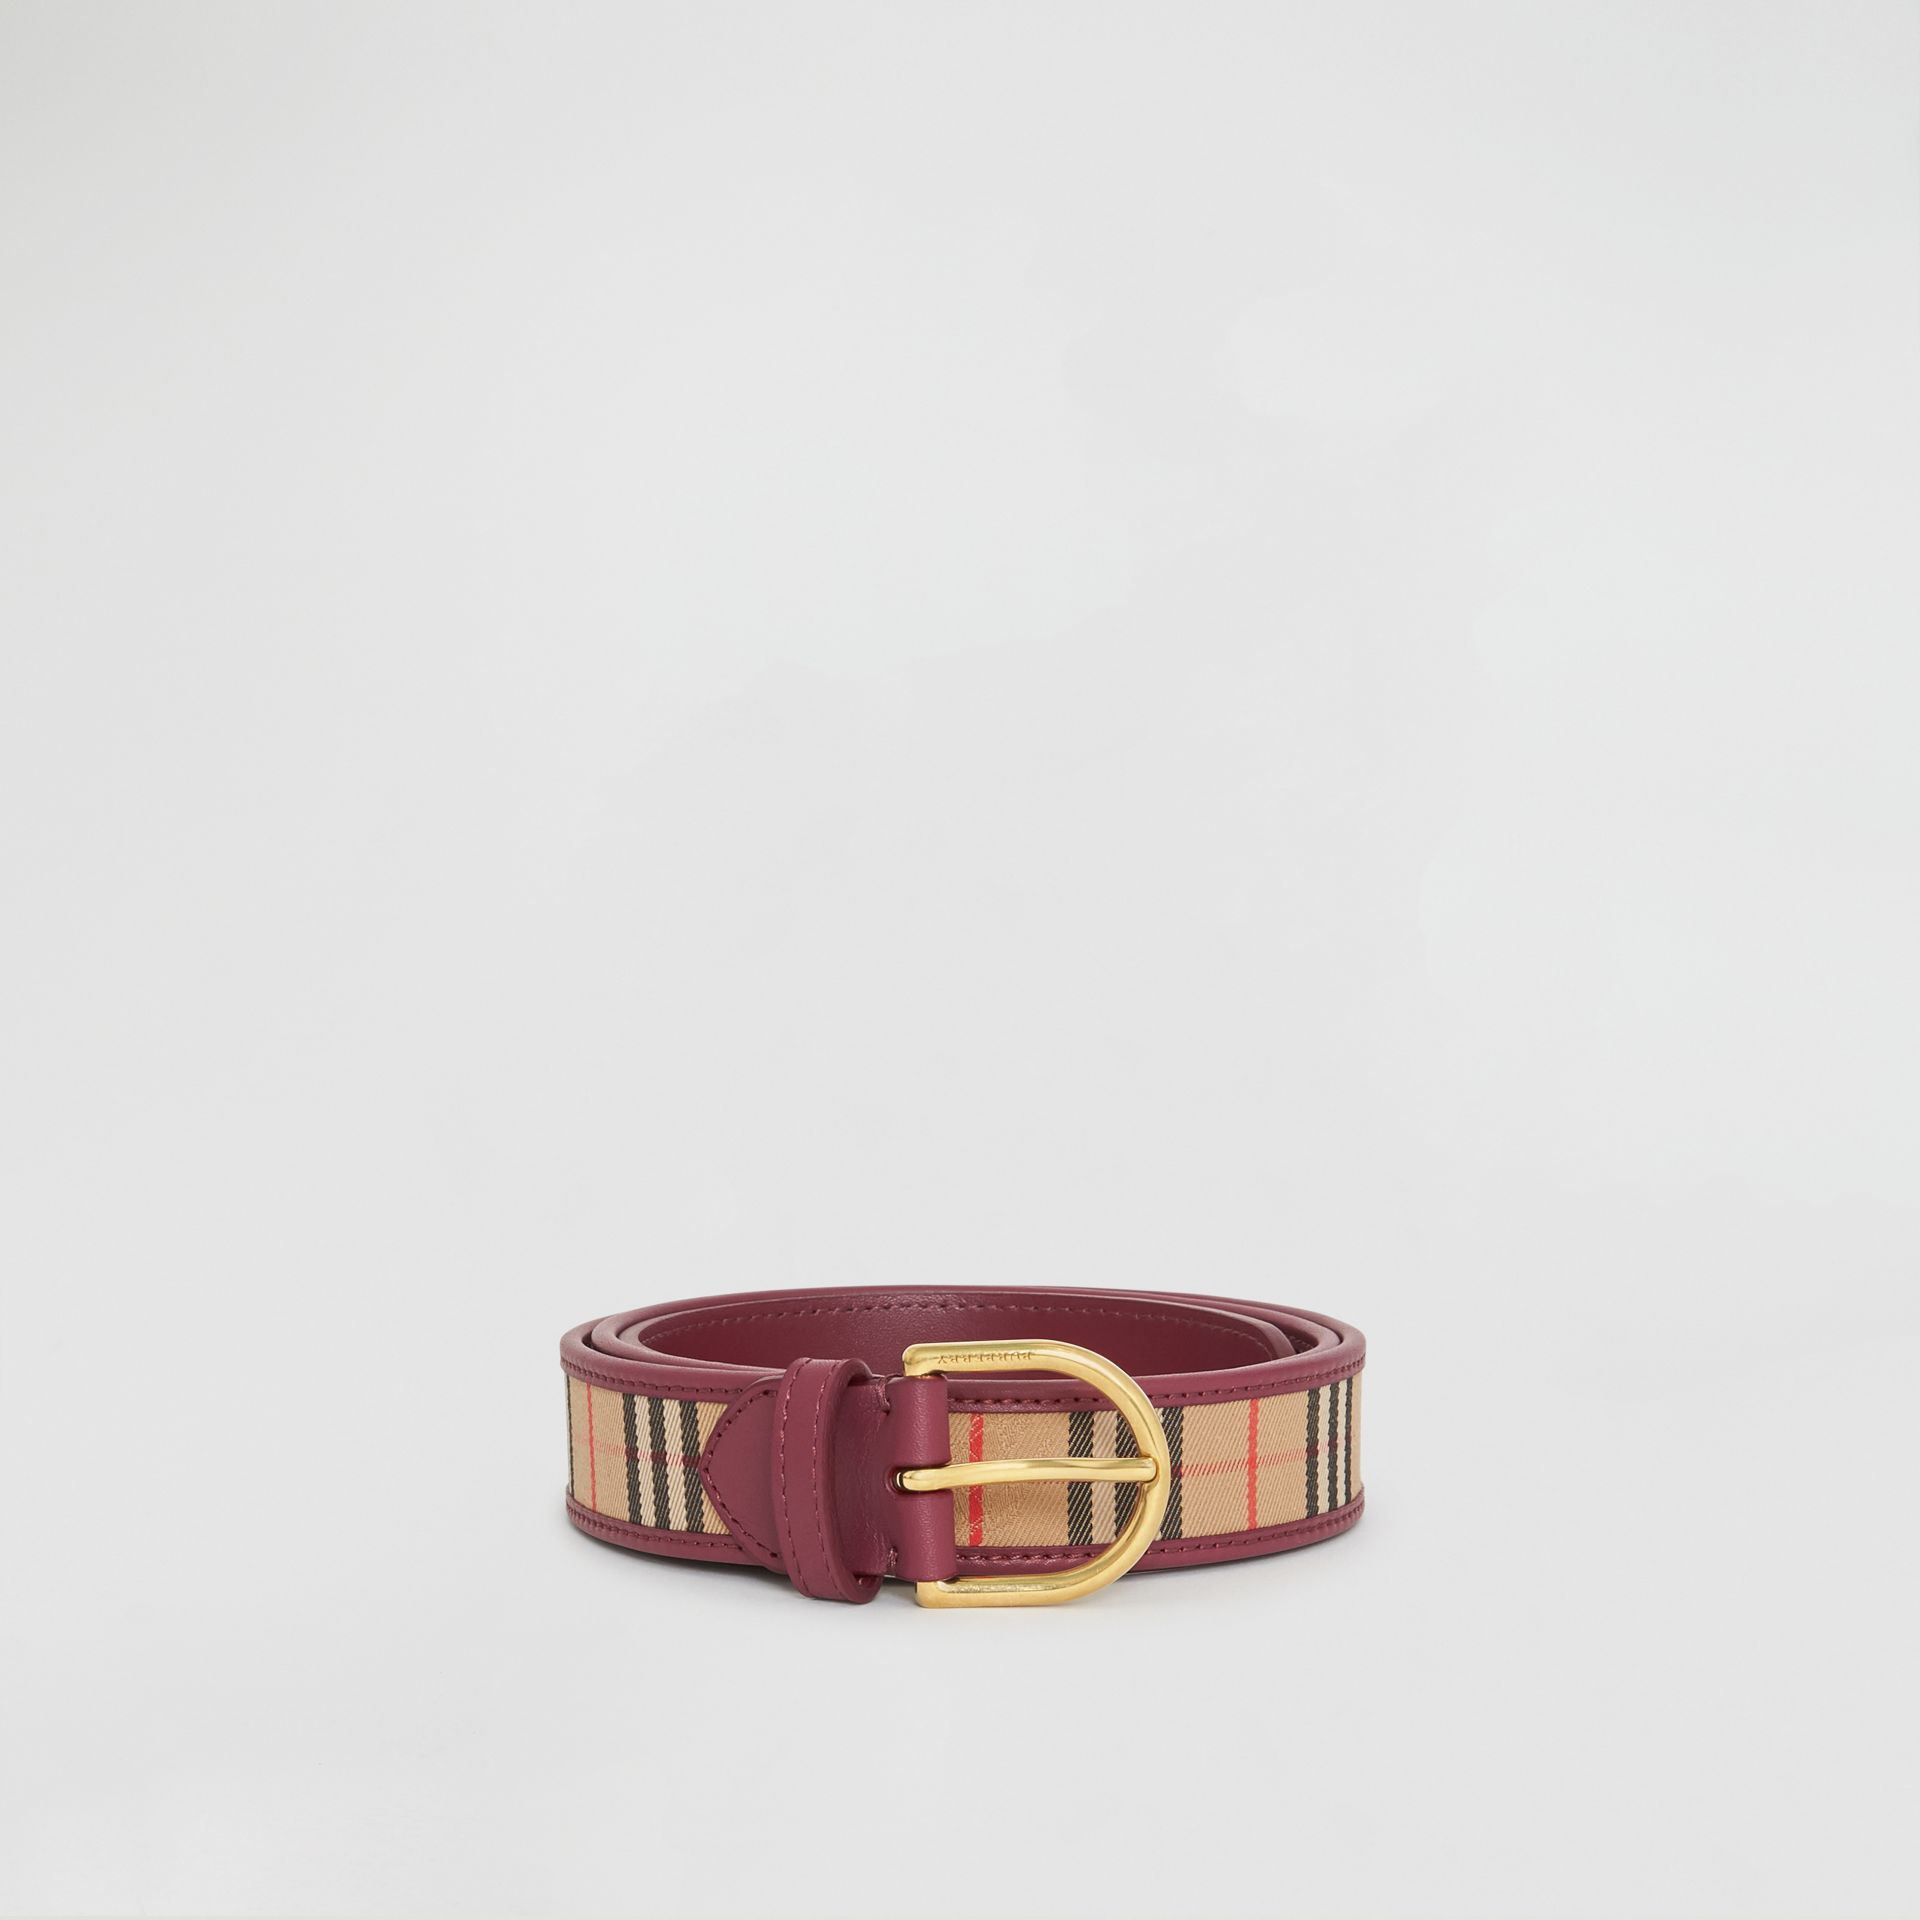 D-ring Buckle 1983 Check and Leather Belt in Antique Red - Men | Burberry Australia - gallery image 3